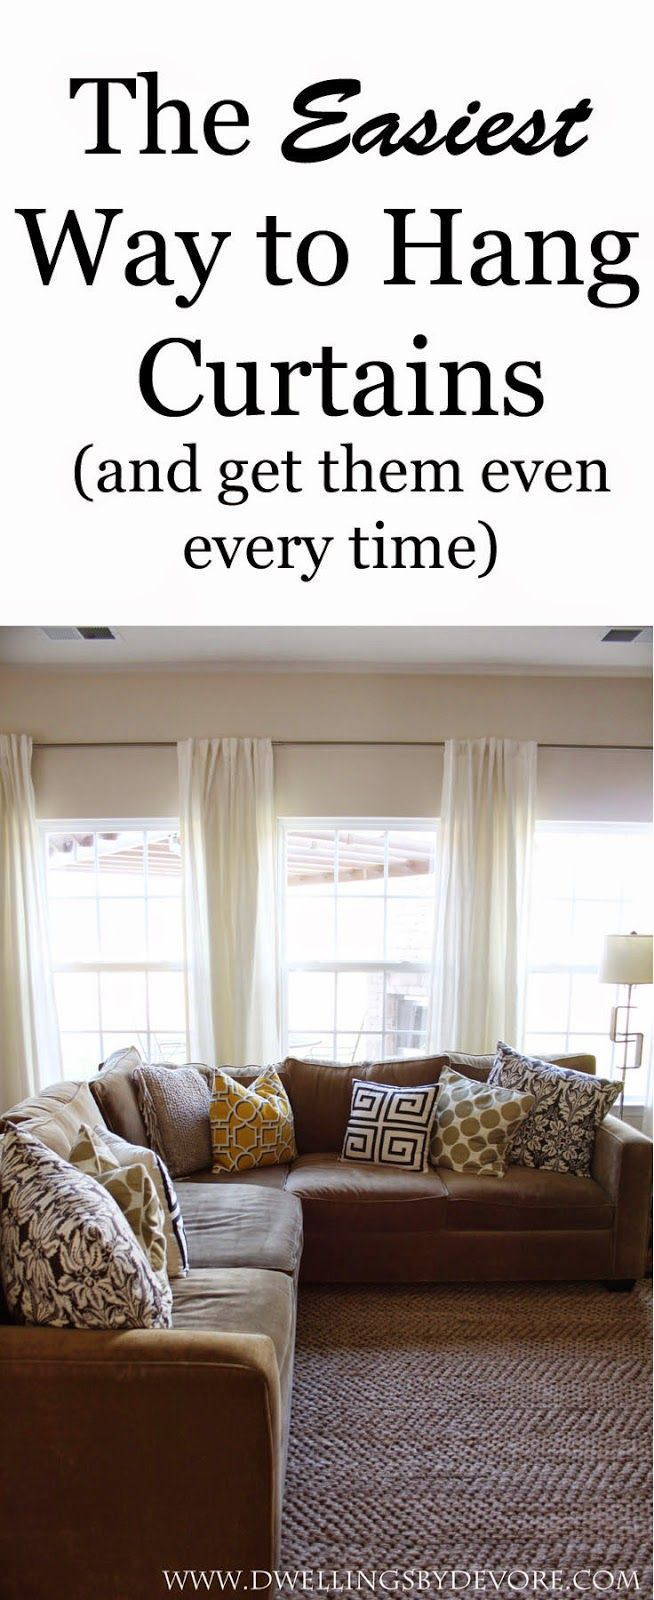 The Easiest Way To Hang Curtain Rods And Get Them Even Every Time